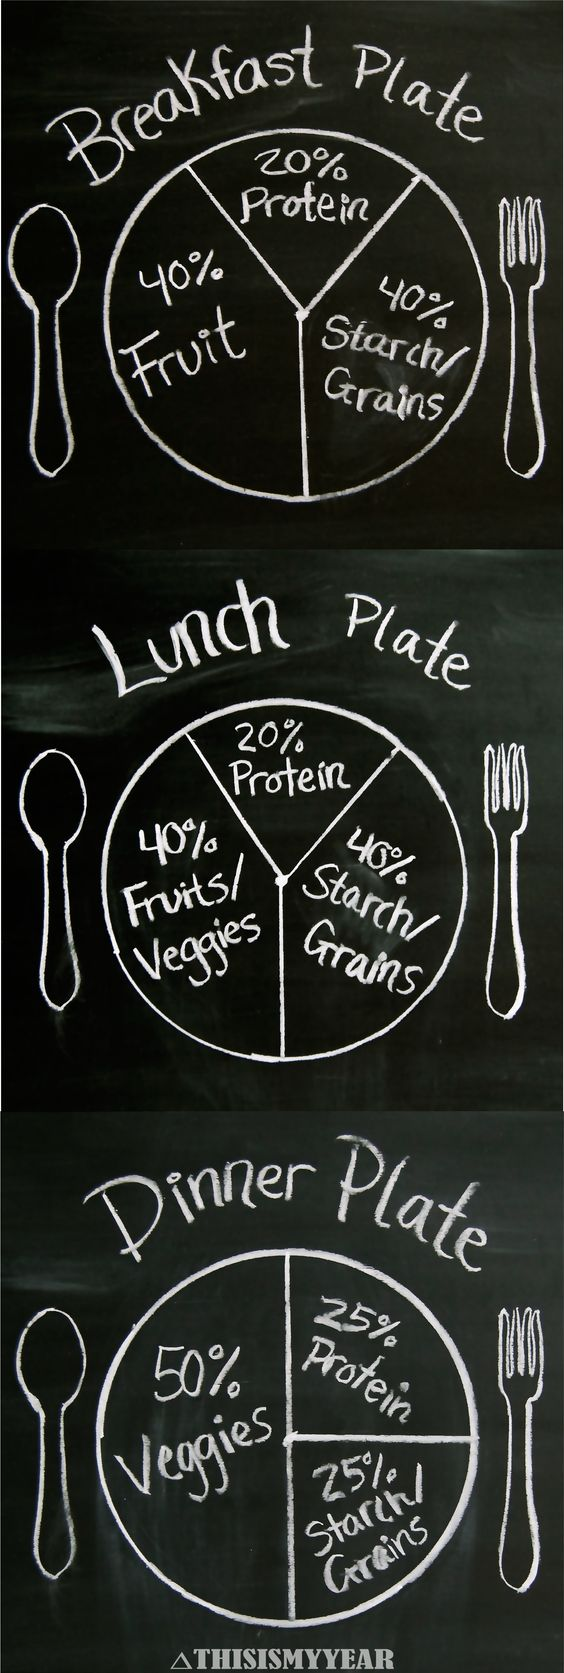 Plant Based Diet Plate Portions. A great guideline to use when fixing your plate. #thisismyyear #plantbased: